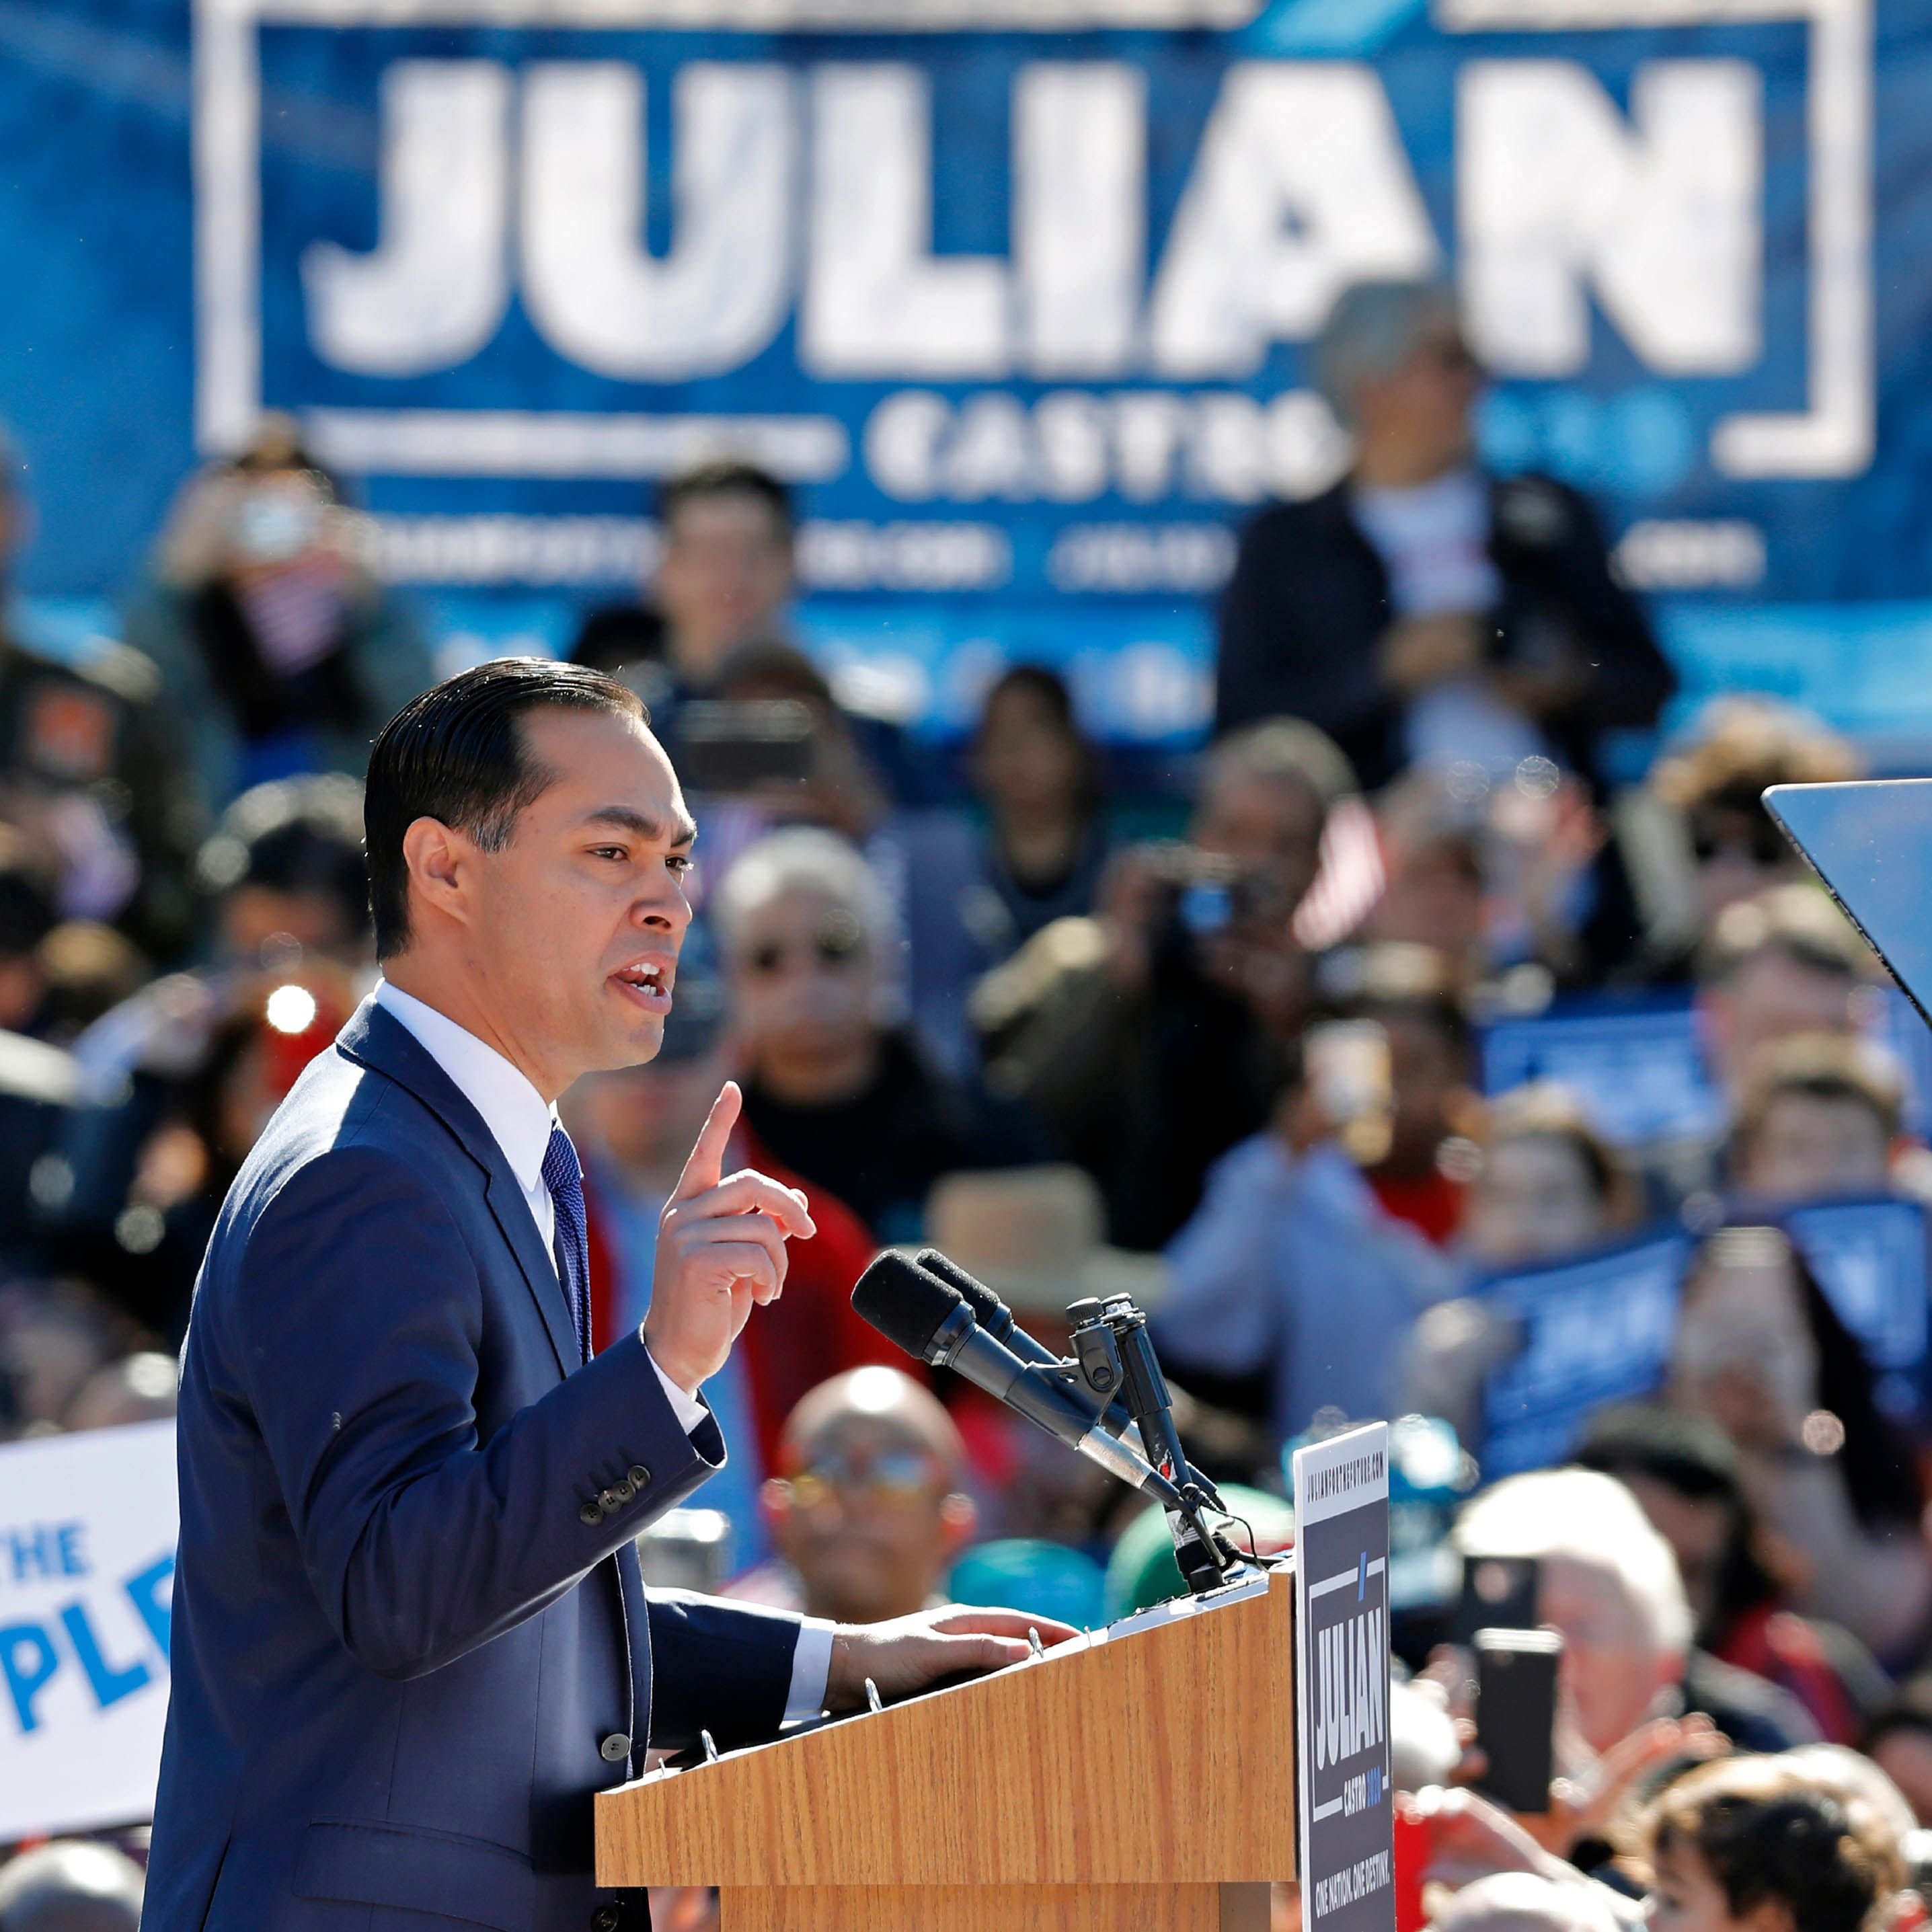 Julian Castro is the only major Democratic candidate who has endorsed reparations with an actual race-specific proposal.